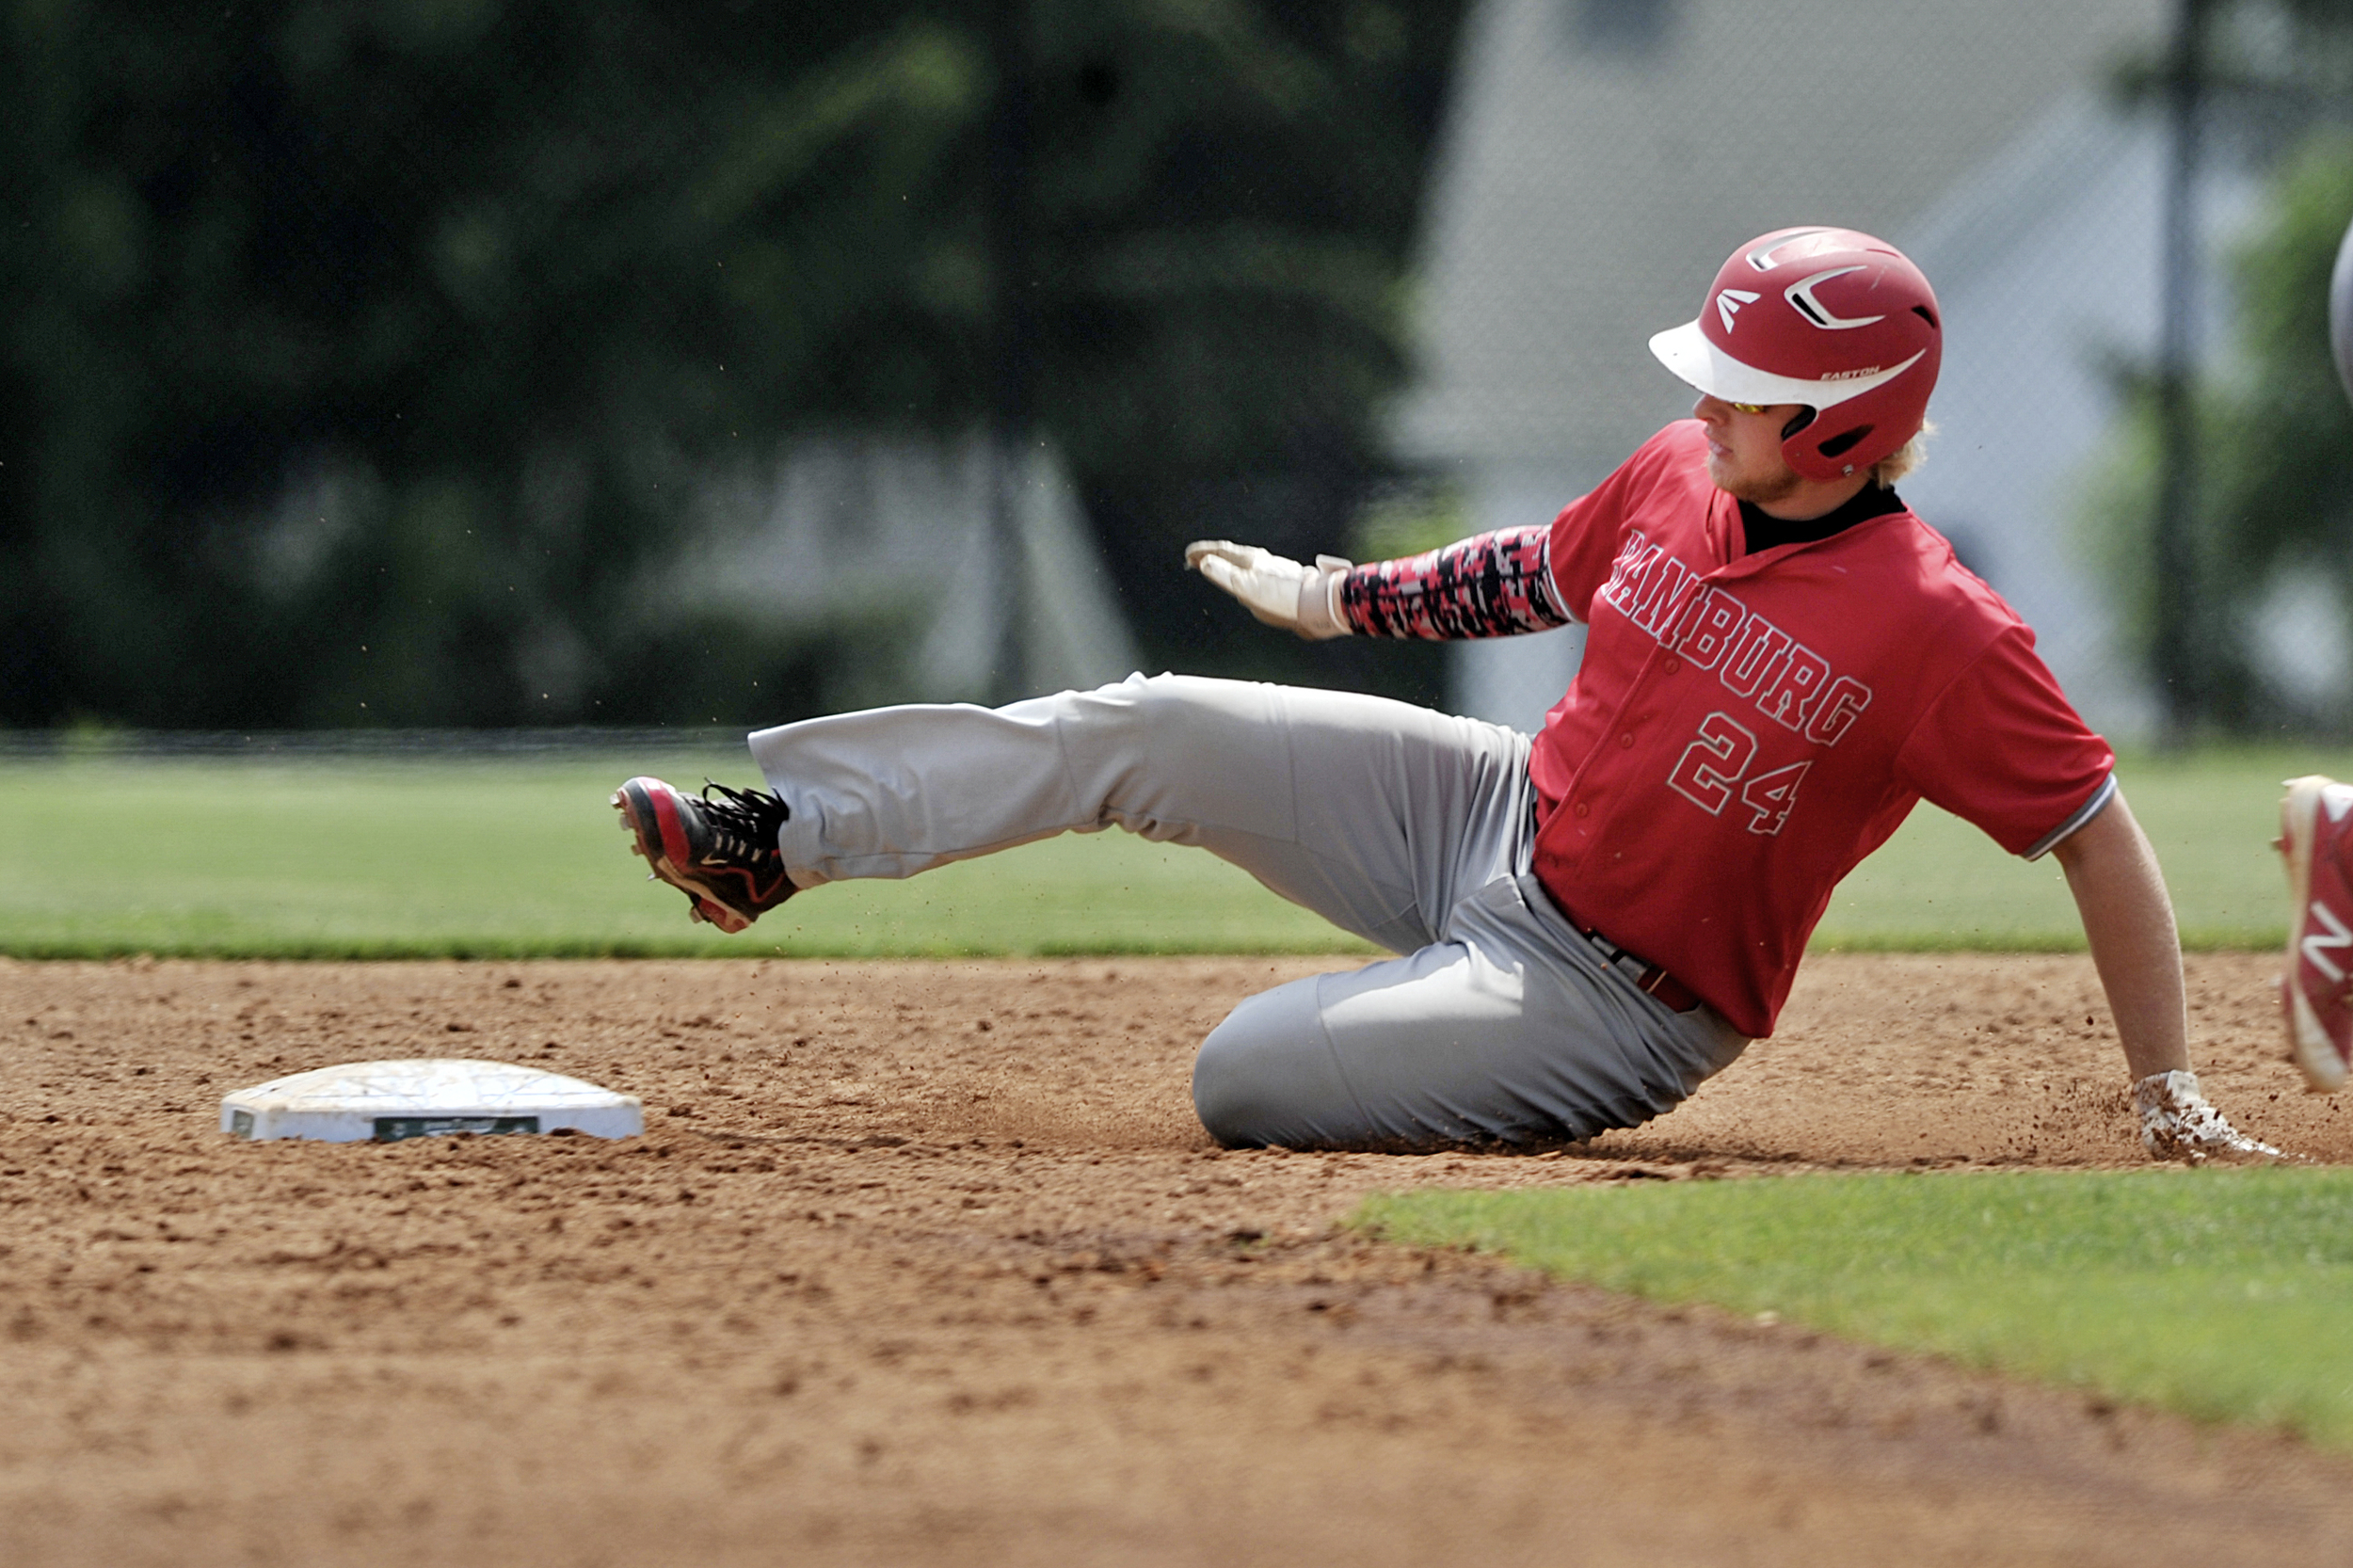 Hamburg's Derek Roberts slides into second base at the game against Bellefonte in the PIAA playoffs in Chambersburg, PA, on June 13, 2016. (Sarah Stier: Reading Eagle)